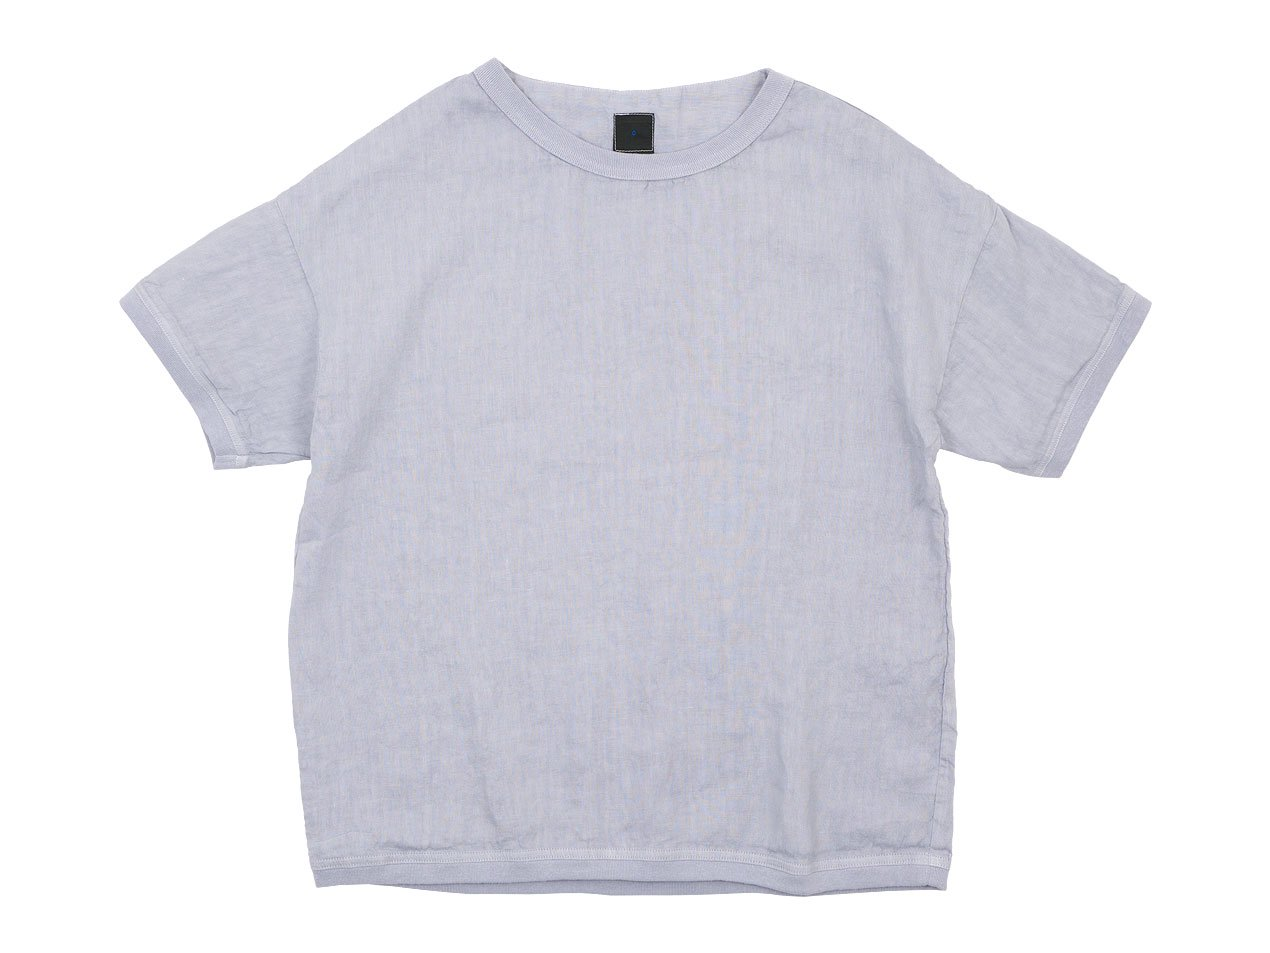 maillot linen shirts Tee ICE GRAY